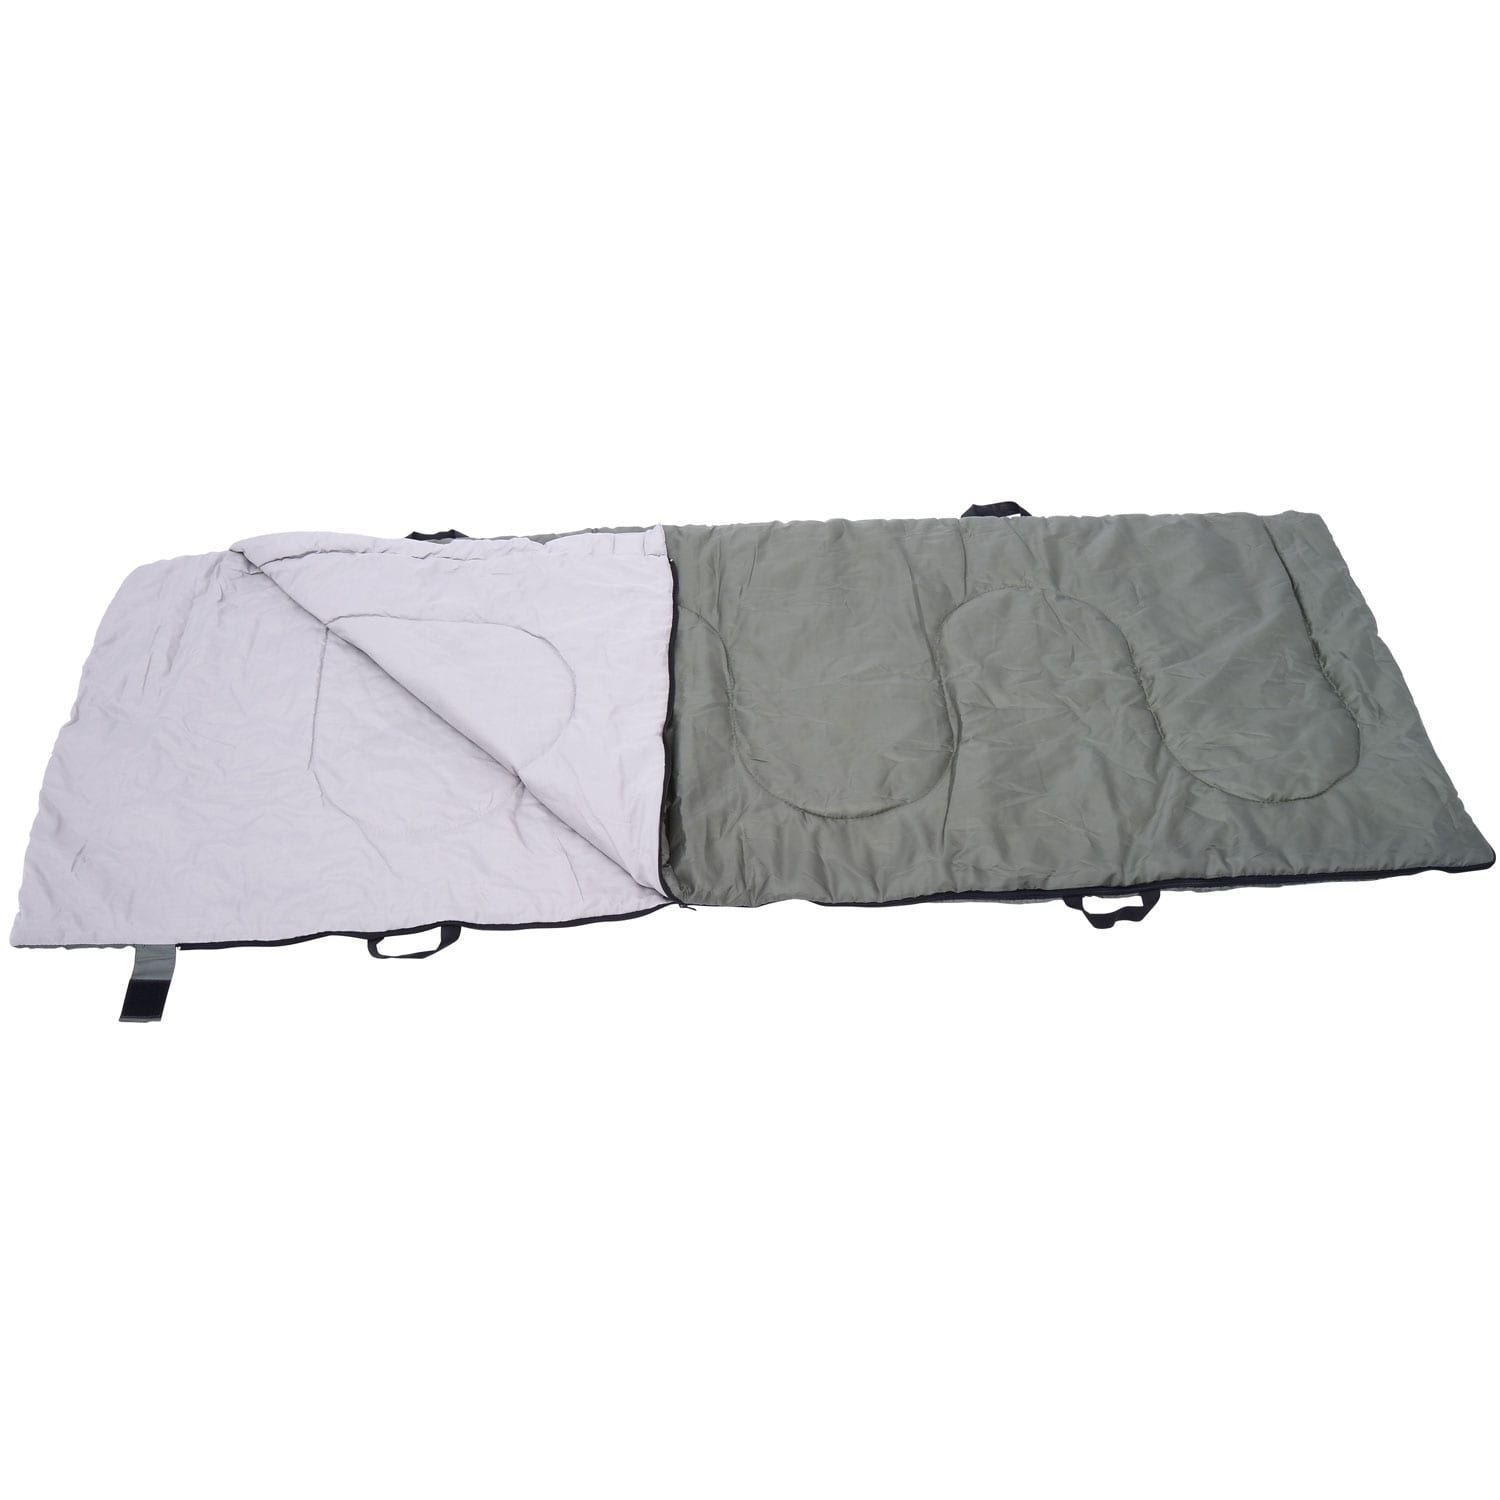 Outsunny Pop Up Tent Cot with Air Mattress and Sleeping Bag Combo ...